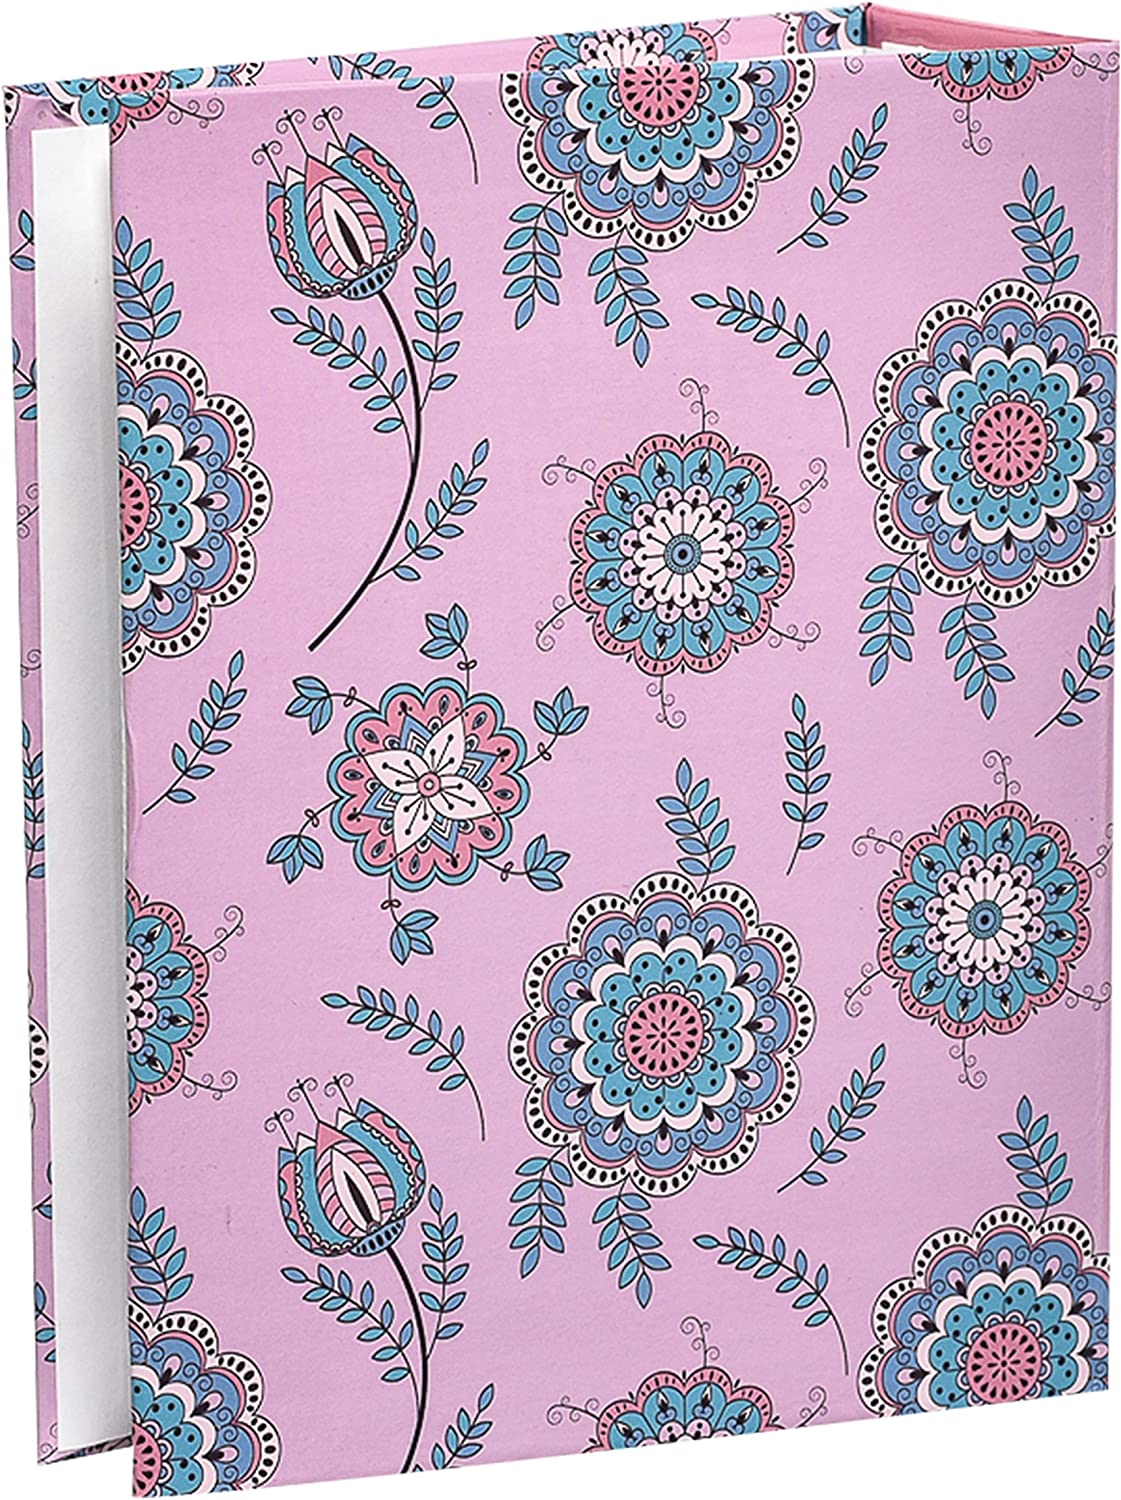 Black Arpan 6x4 Small Slip In Case Photo Album for 100 Photos Various Design /& Colurs